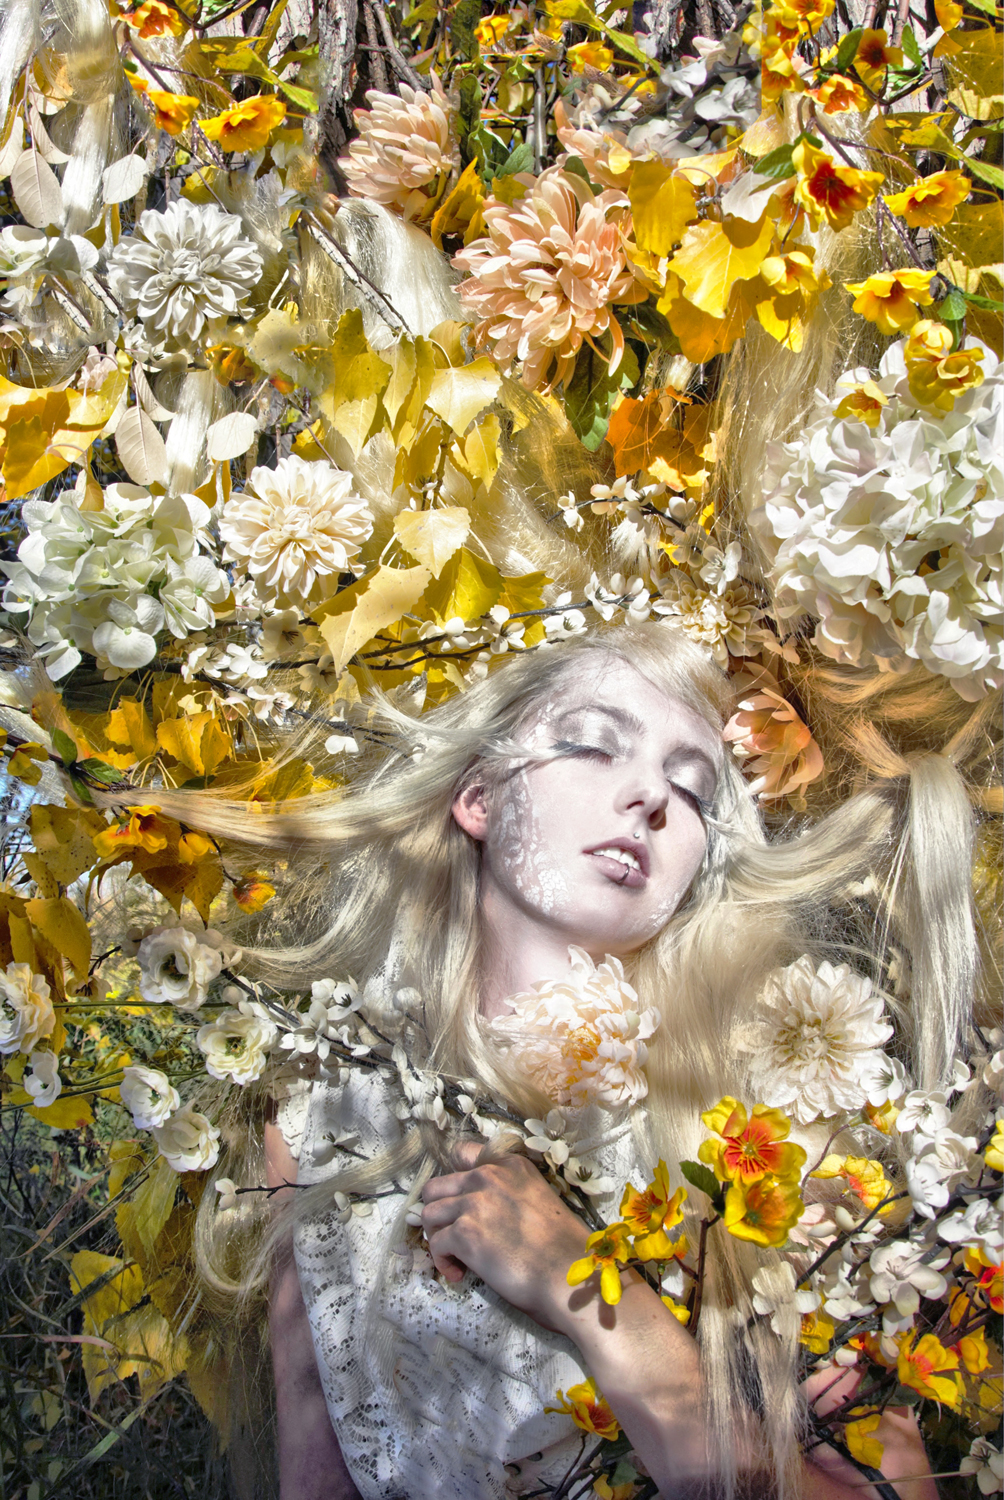 Light-Sleeps-in-the-Flowers-Chiaroscuro-Fairytale-Floral-Design_Carly-Carpenter.jpg